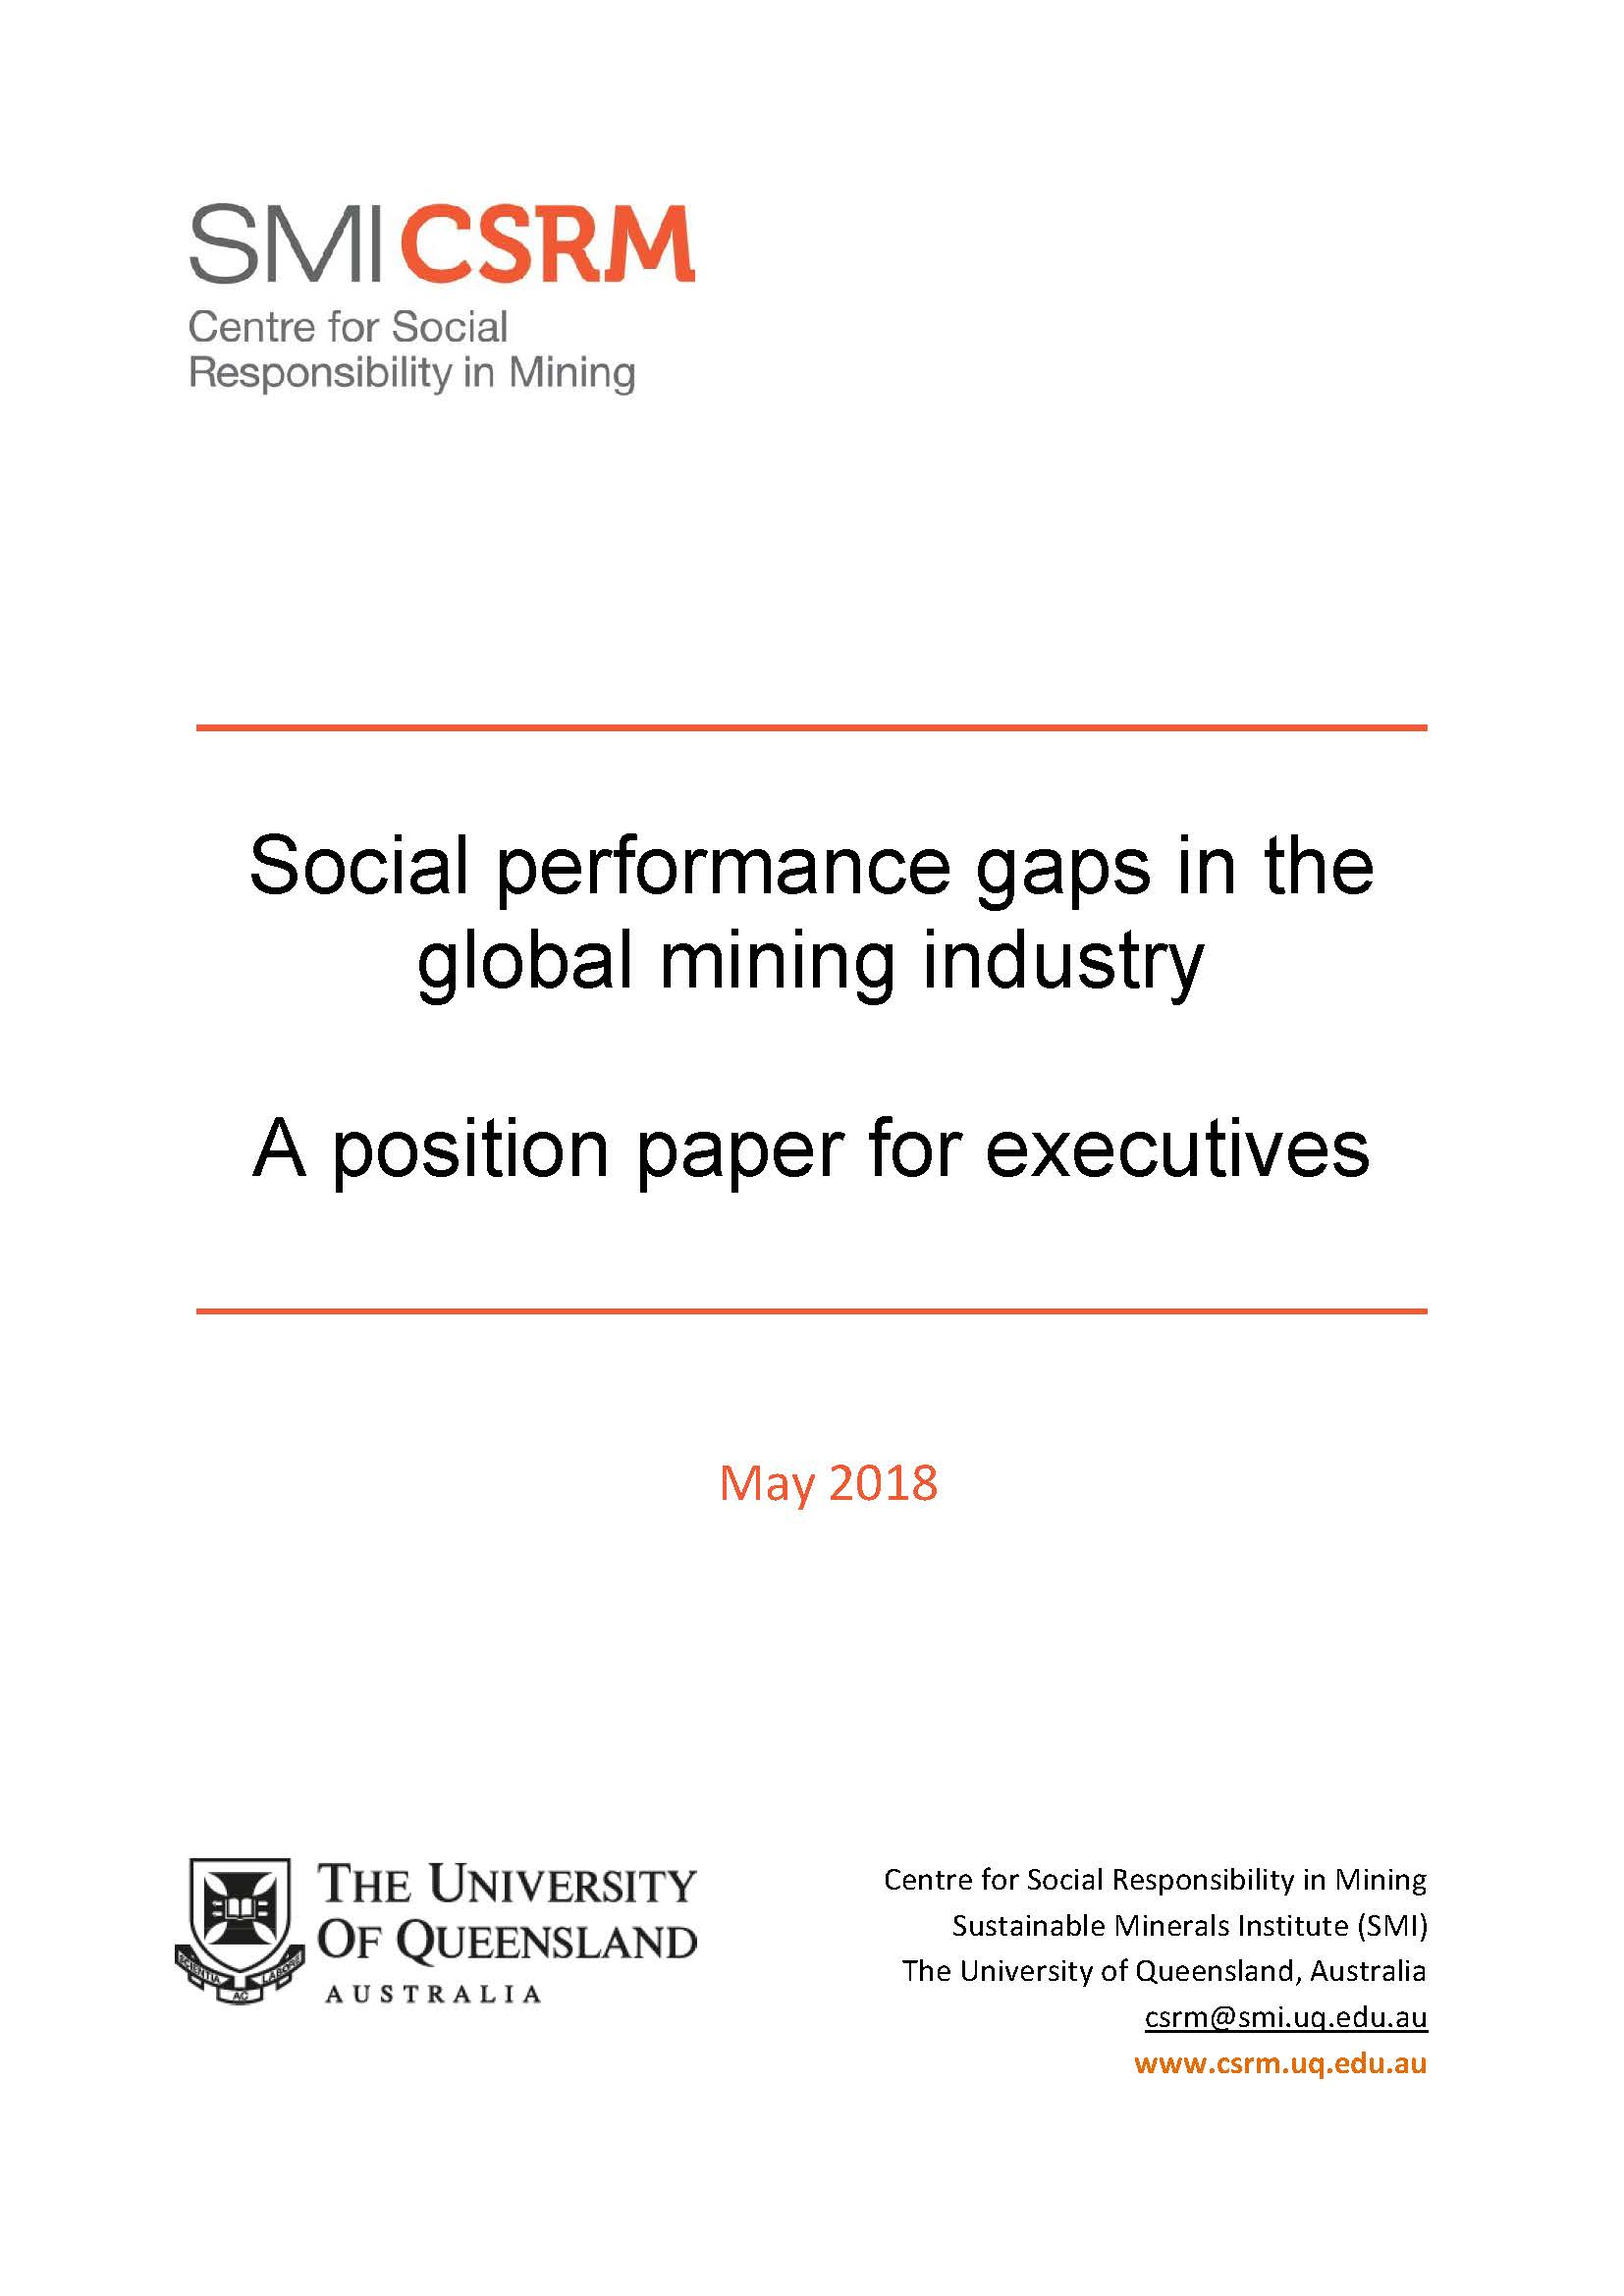 Social performance gaps in the global mining industry: a position paper for executives